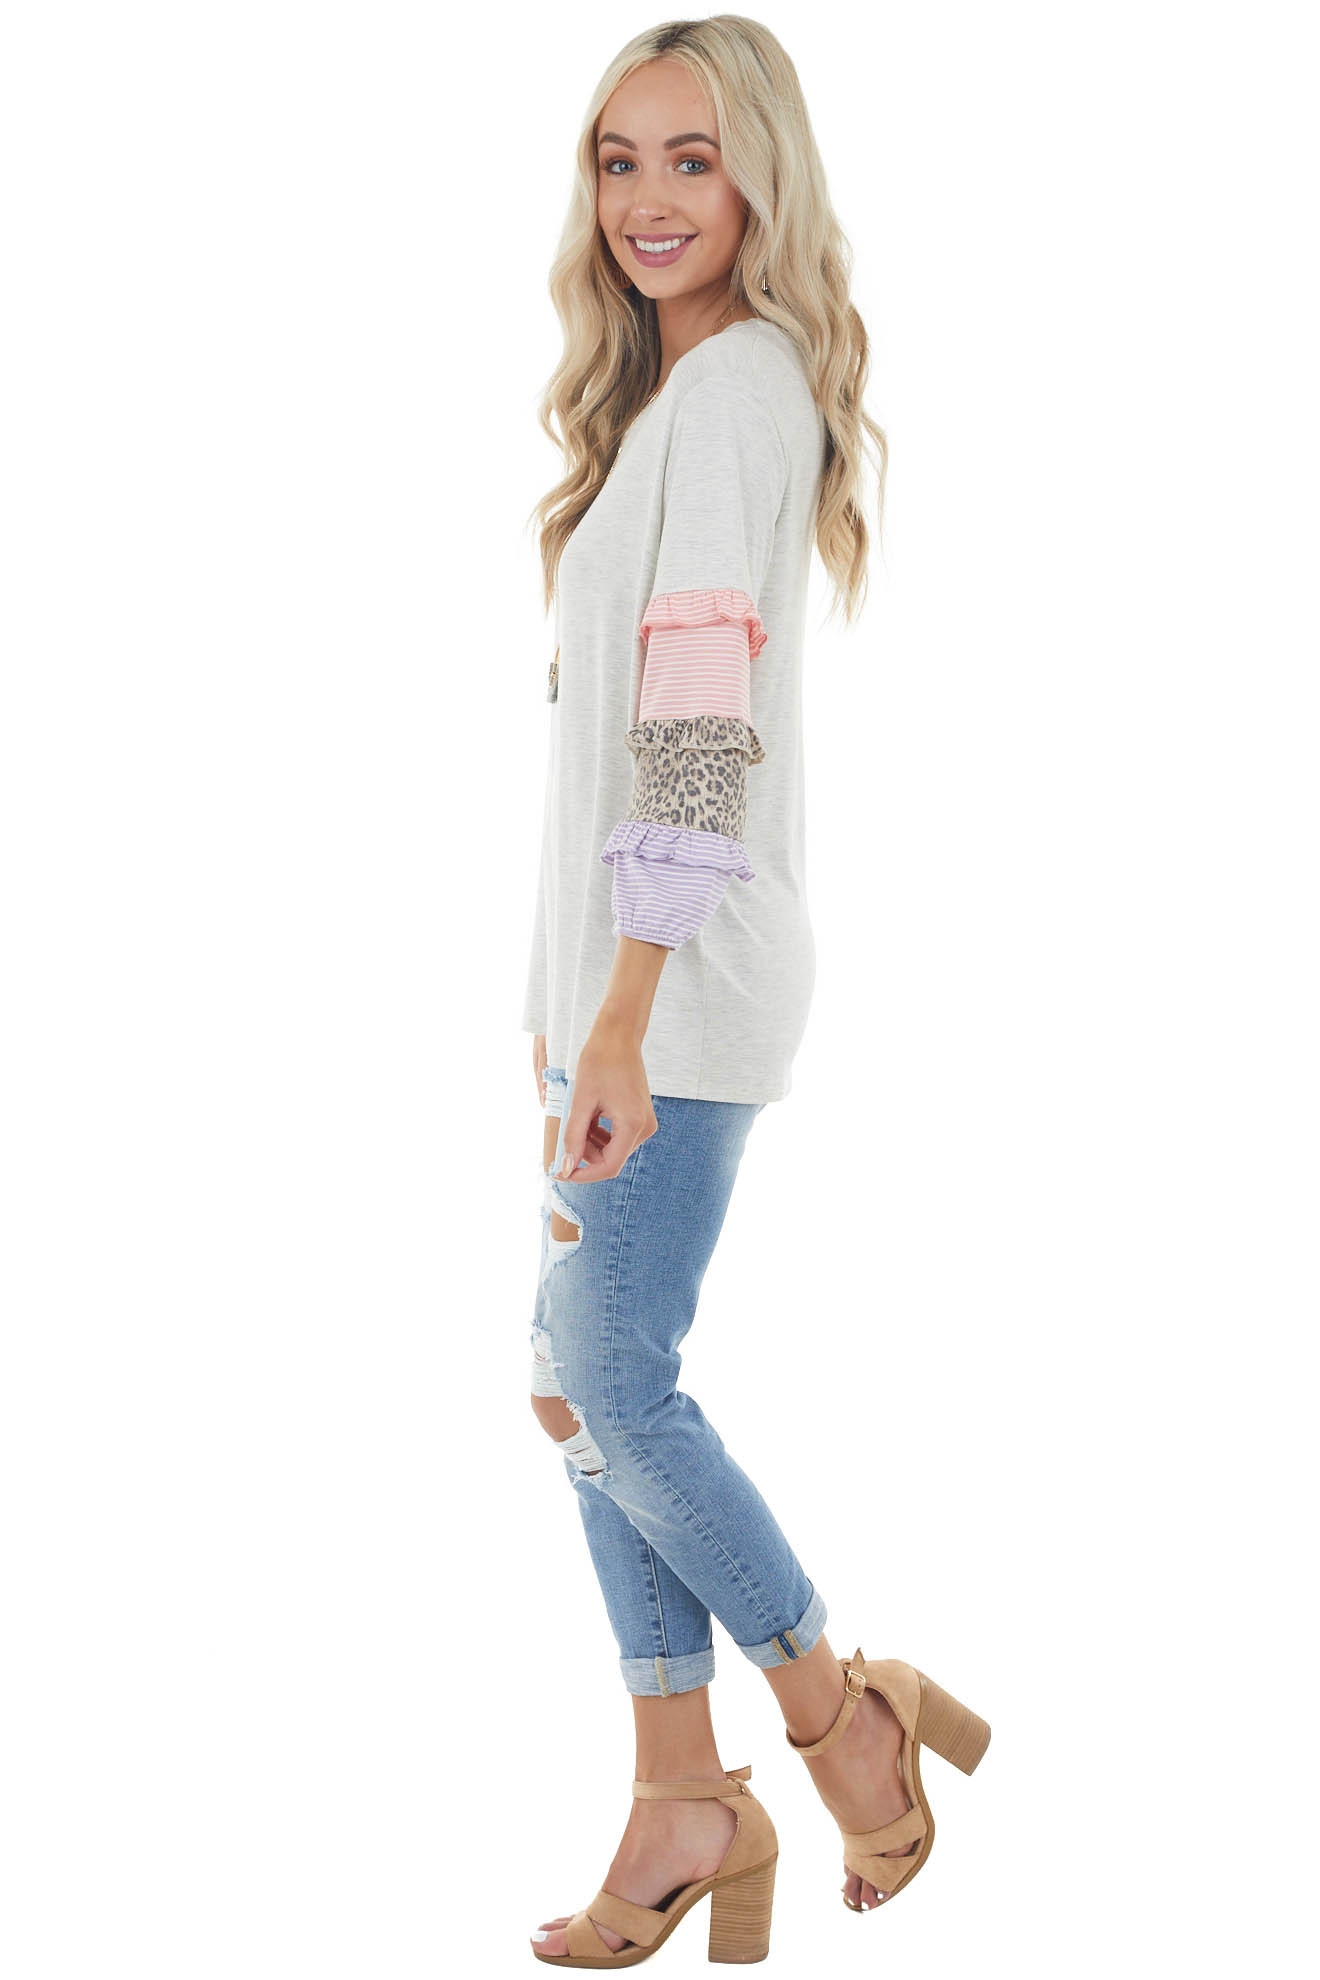 Heathered Dove Grey Knit Top with Multi Pattern Sleeves